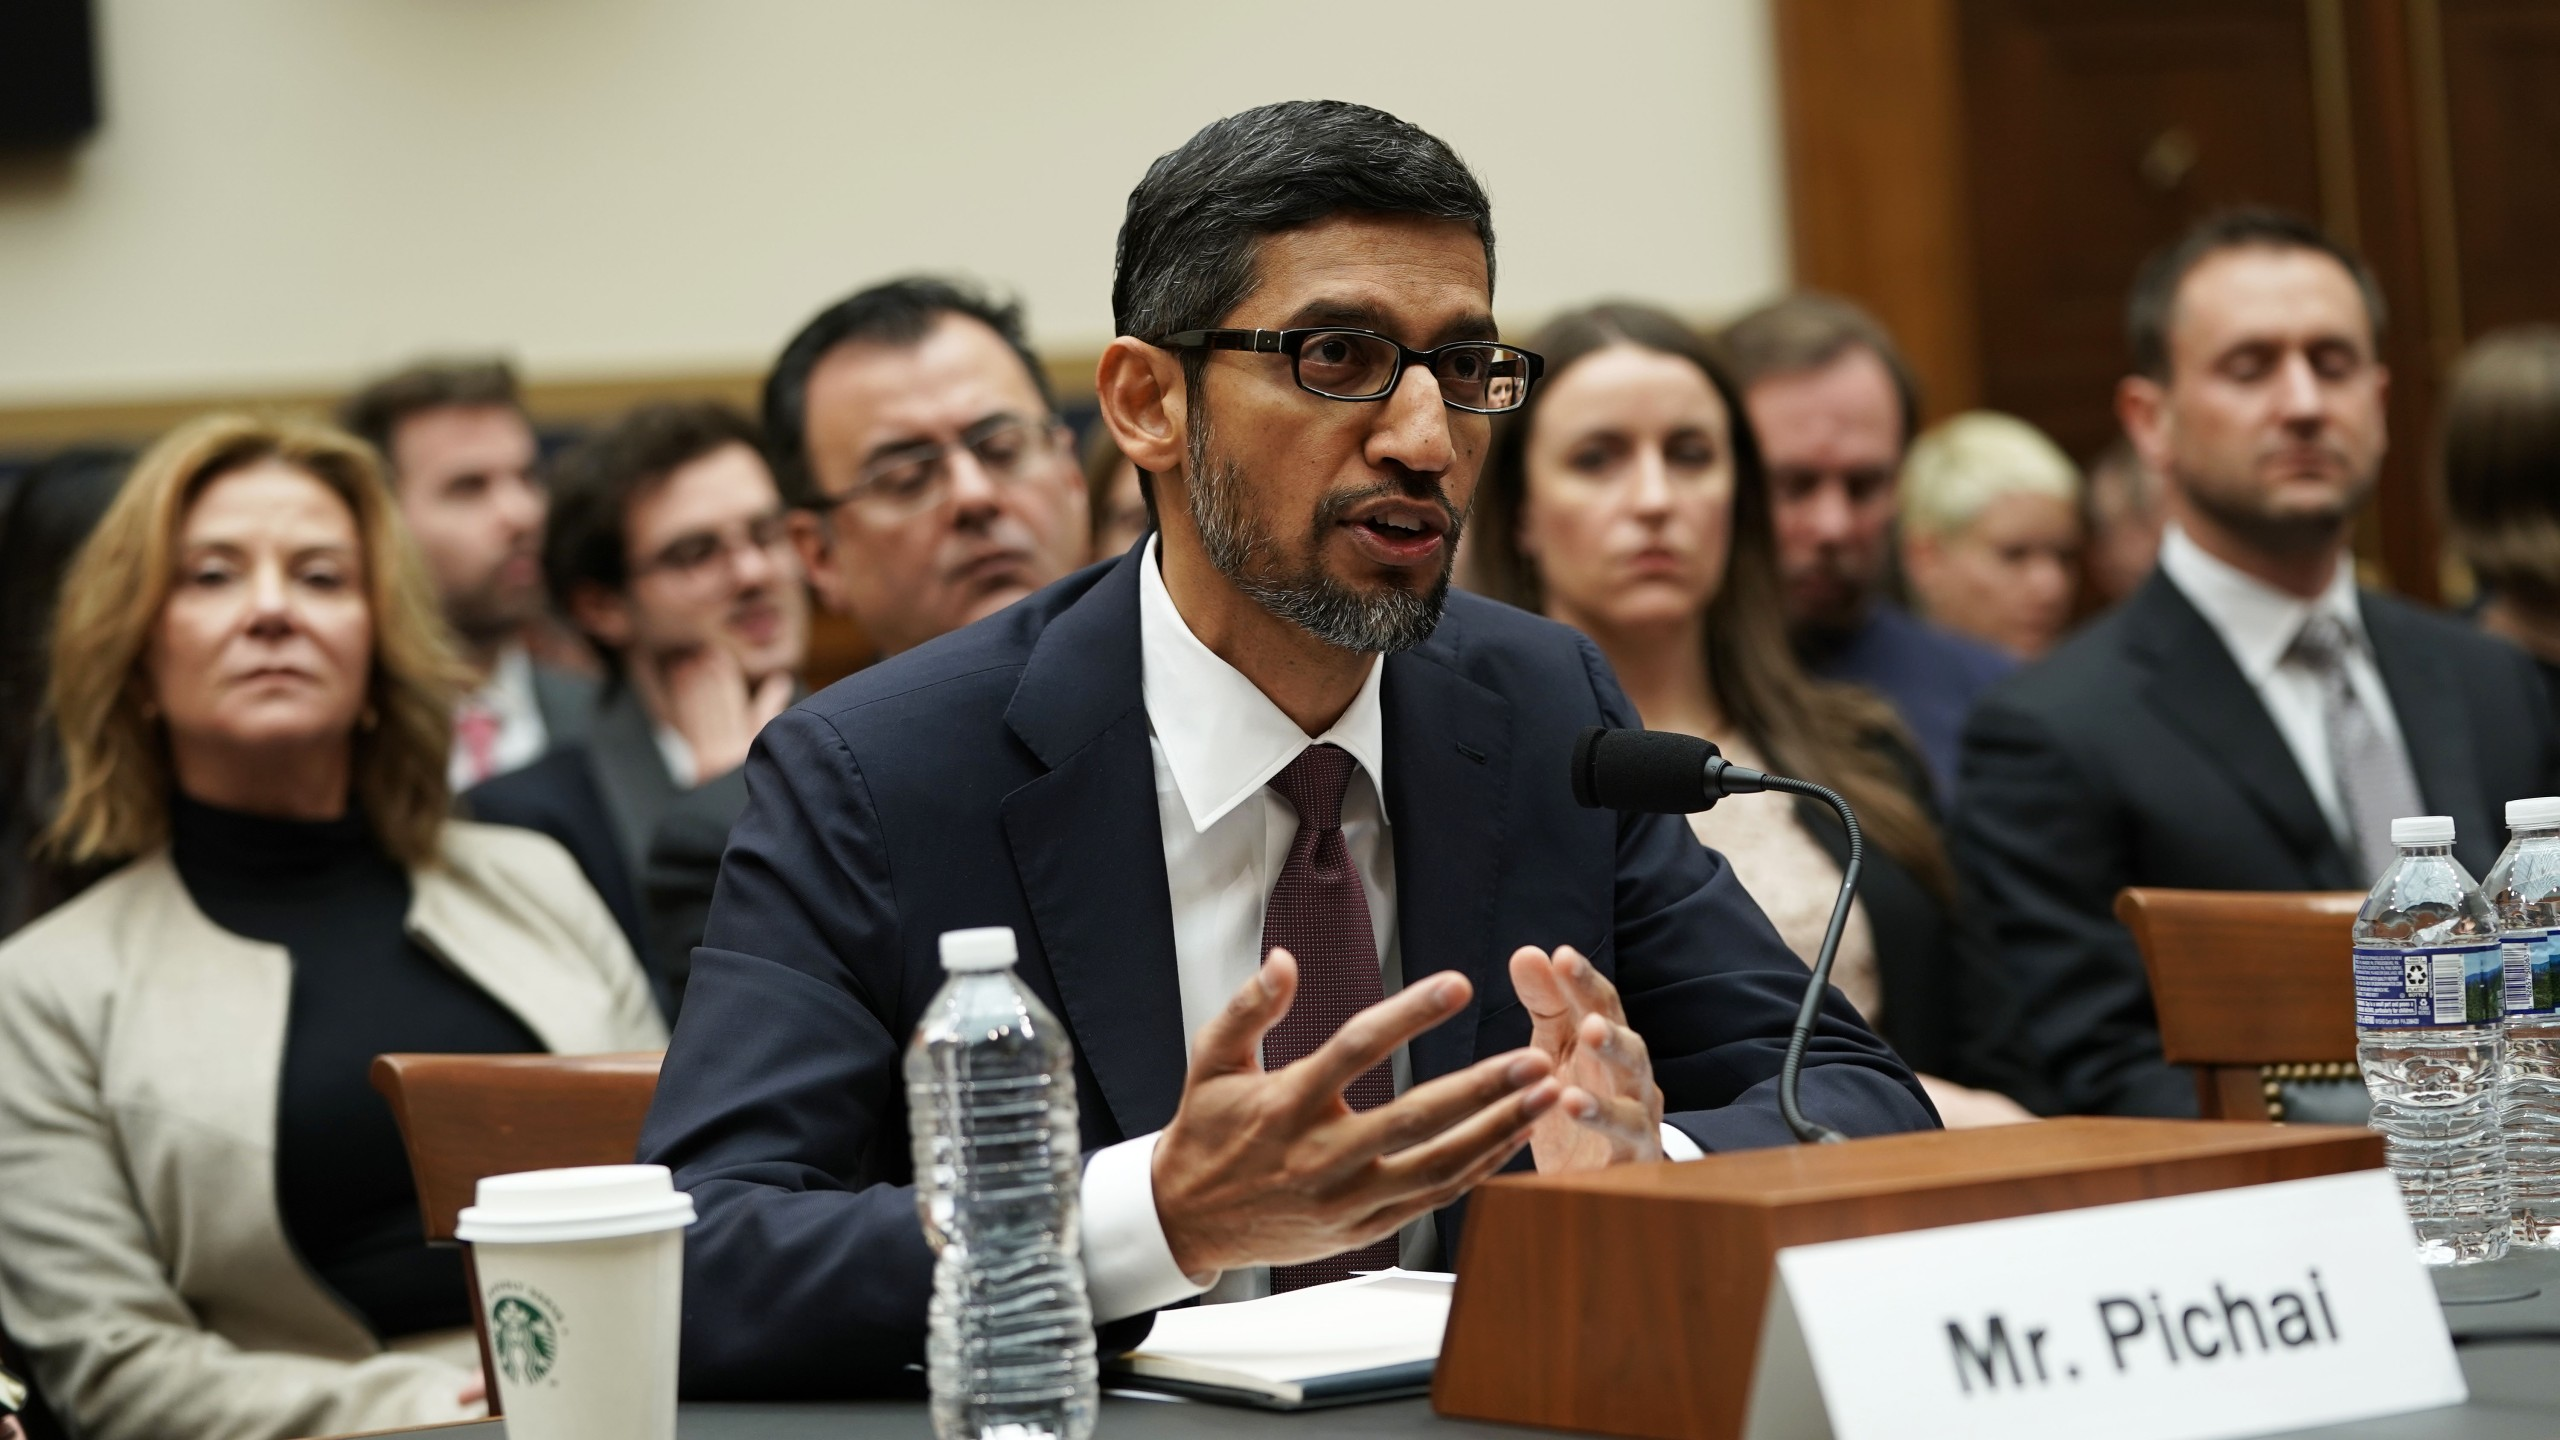 Google CEO Sundar Pichai testifies before the House Judiciary Committee at the Rayburn House Office Building on Dec. 11, 2018. (Credit: Alex Wong/Getty Images)